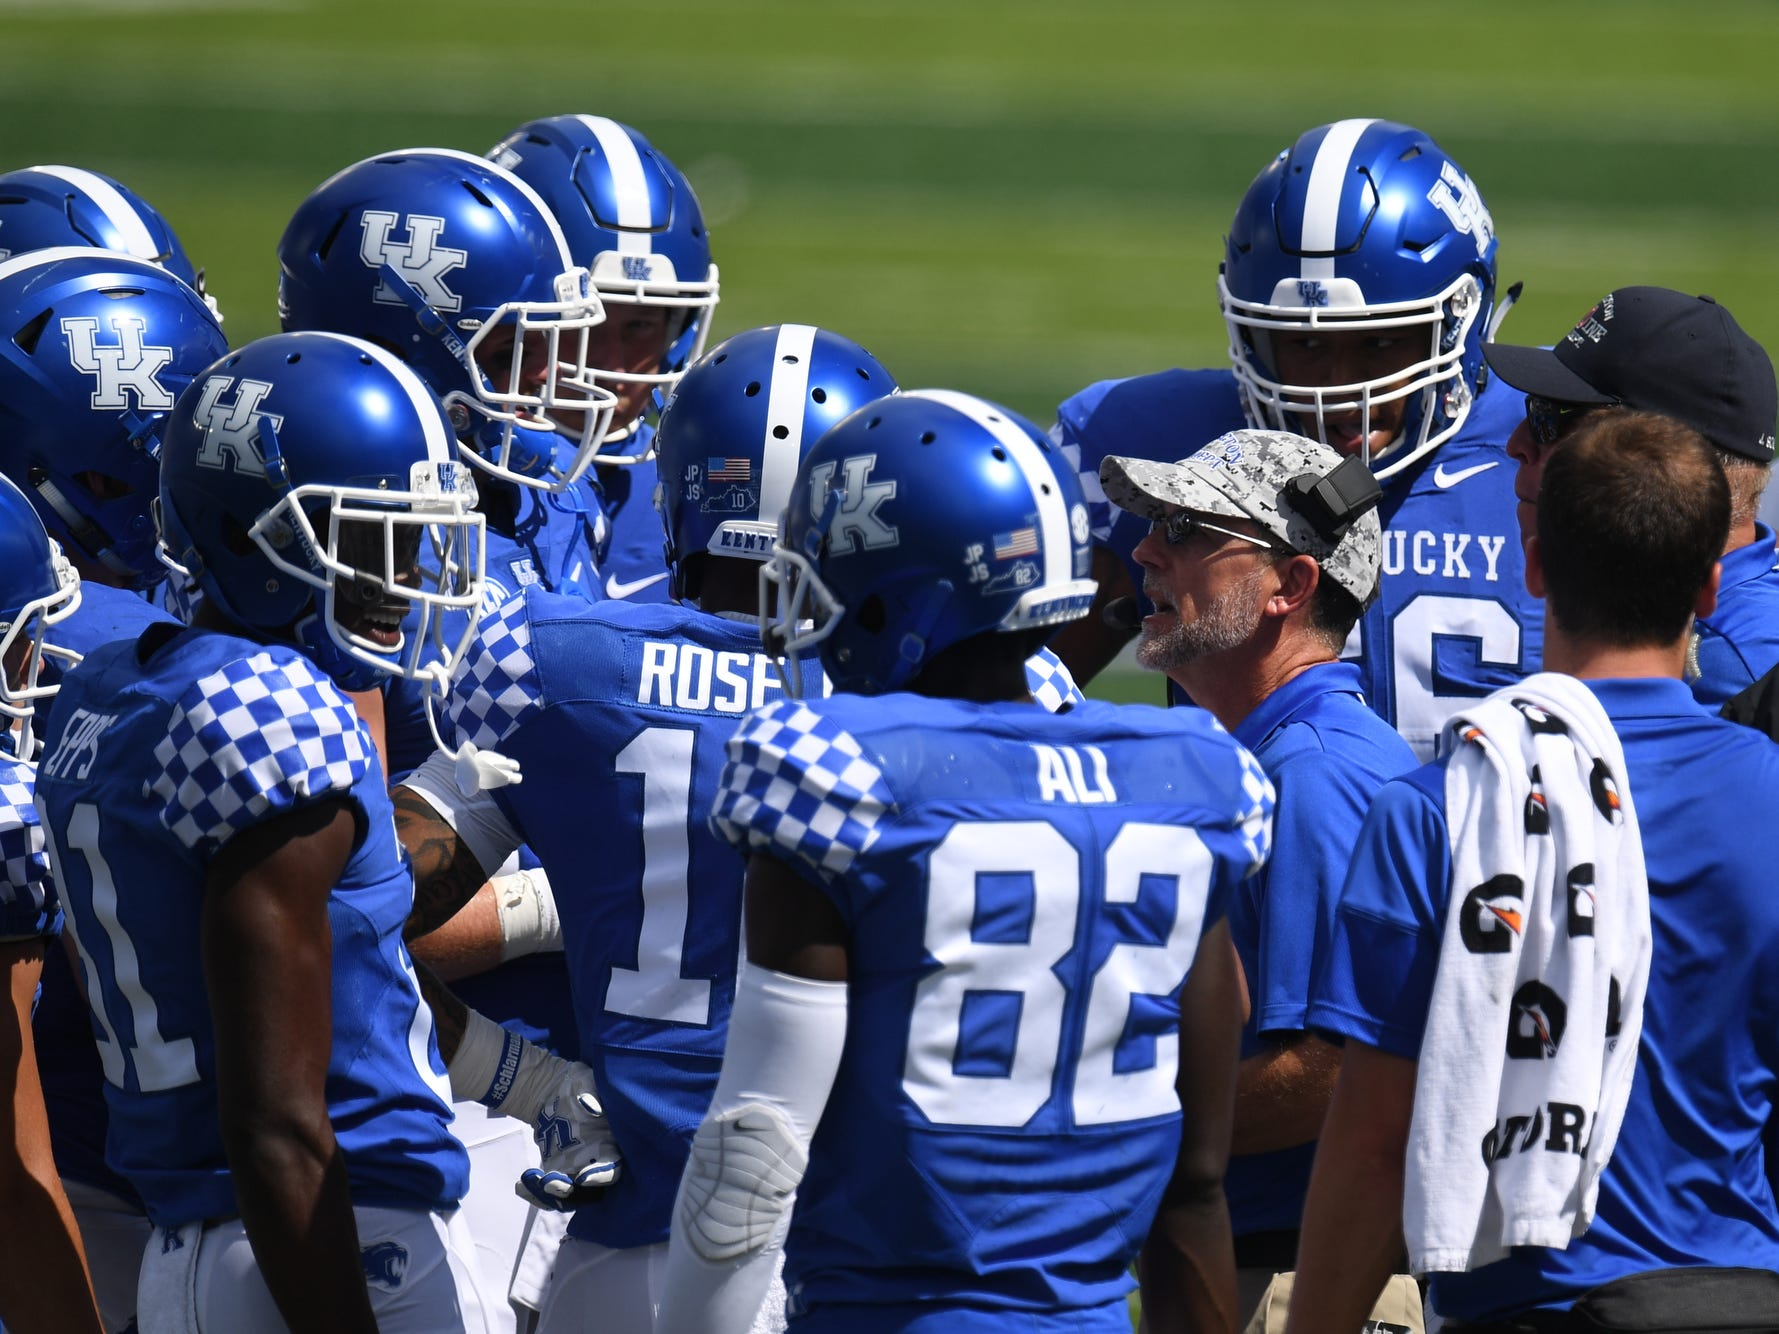 UK assistant head coach Eddie Gran talks to some players during the University of Kentucky football game against Murray State at Kroger Field in Lexington, Kentucky, on Saturday, Sept. 15, 2018.